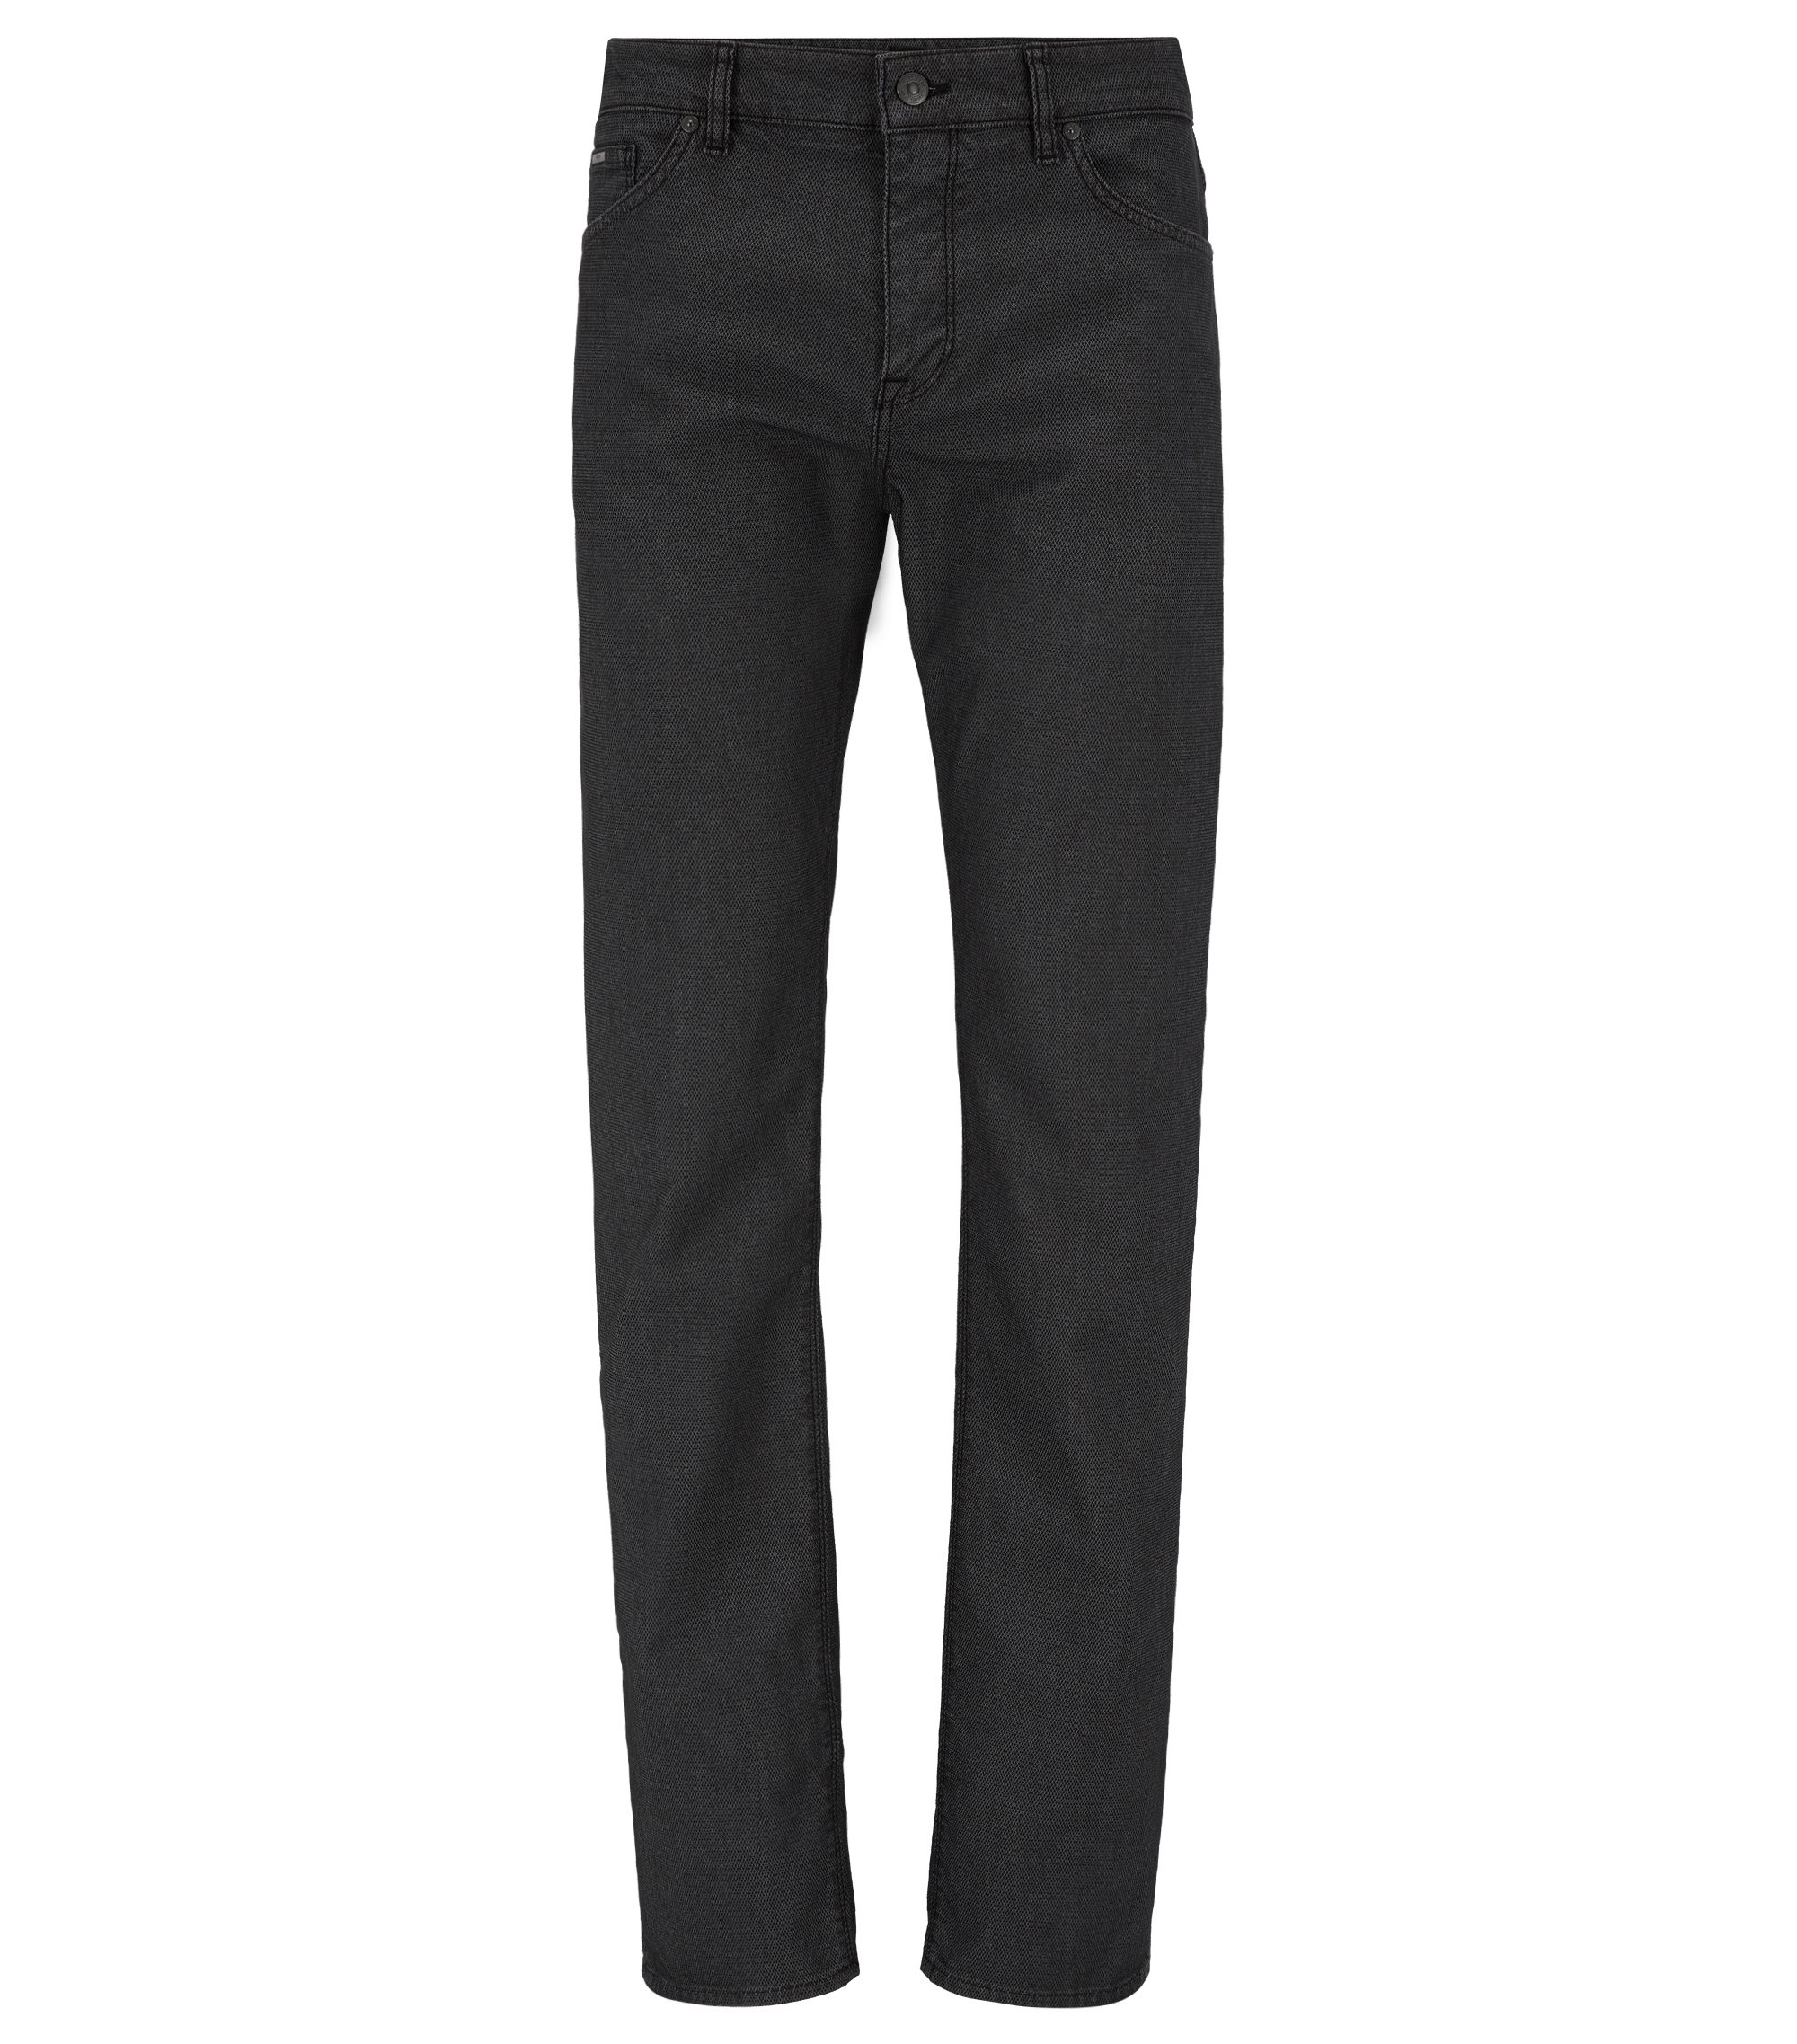 Cotton Blend Pant, Regular Fit | Maine, Black